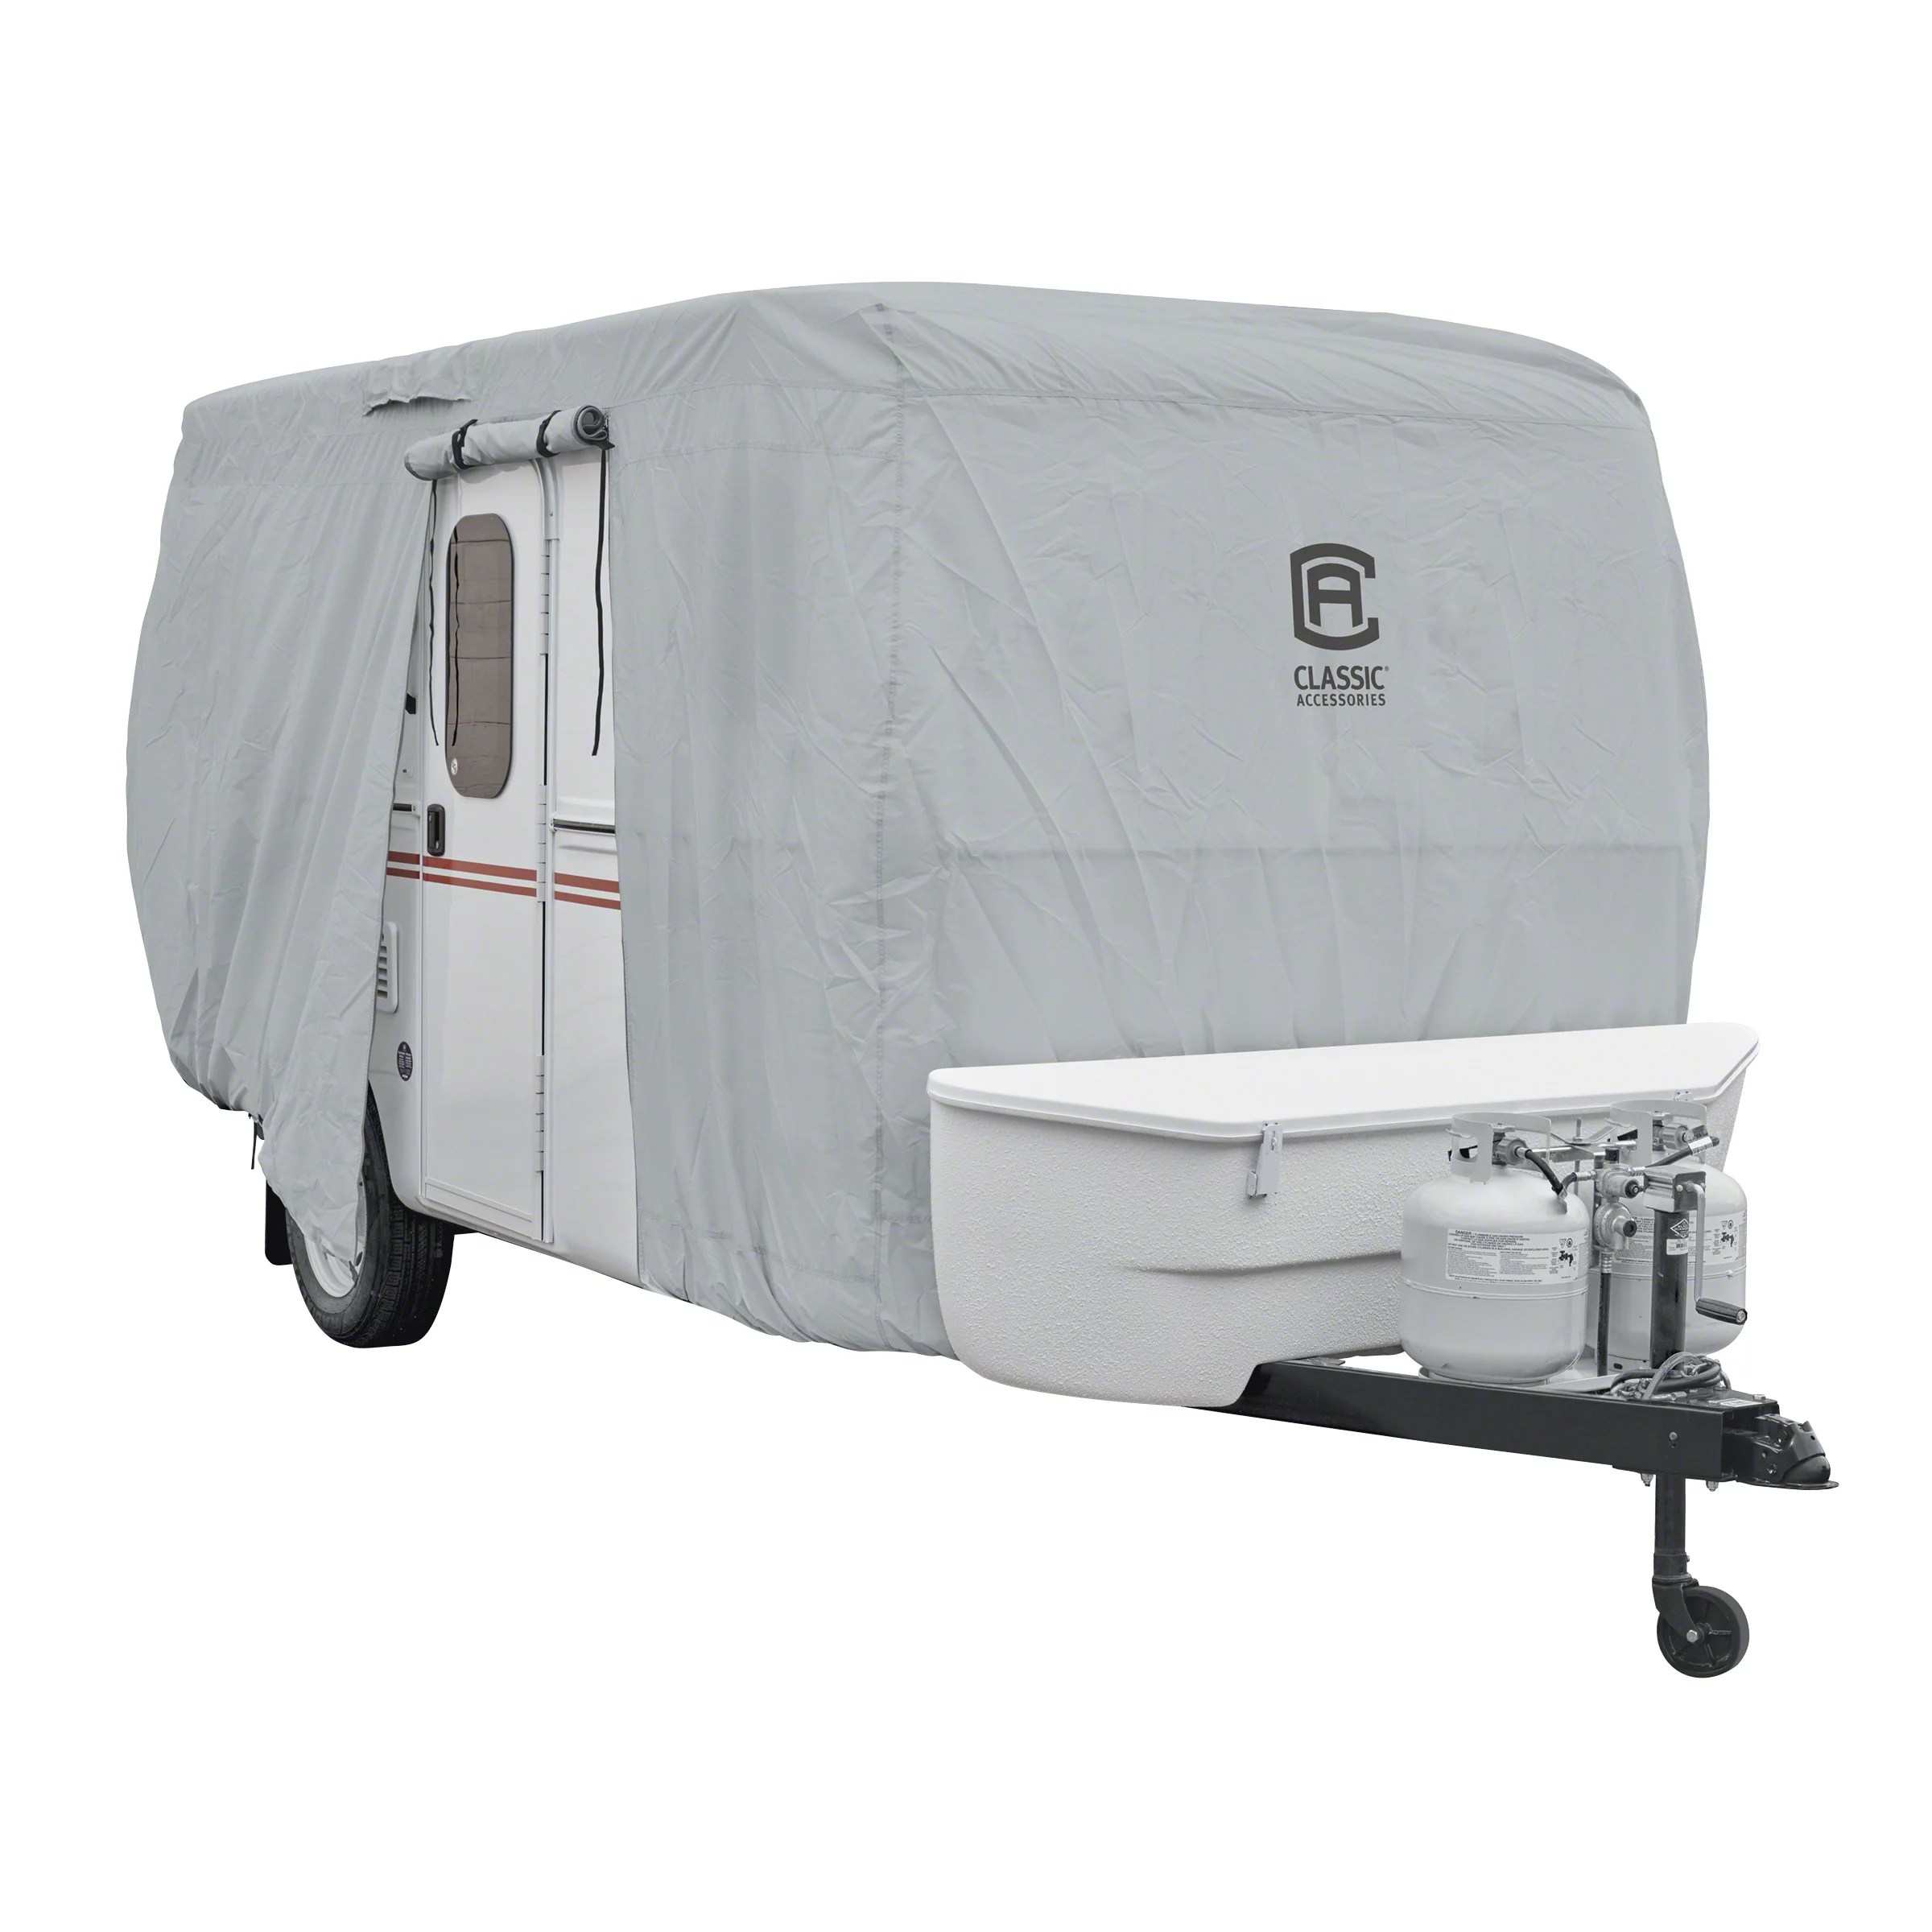 Classic Accessories OverDrive PermaPRO Deluxe Molded Fiberglass Travel Trailer Cover Fits up